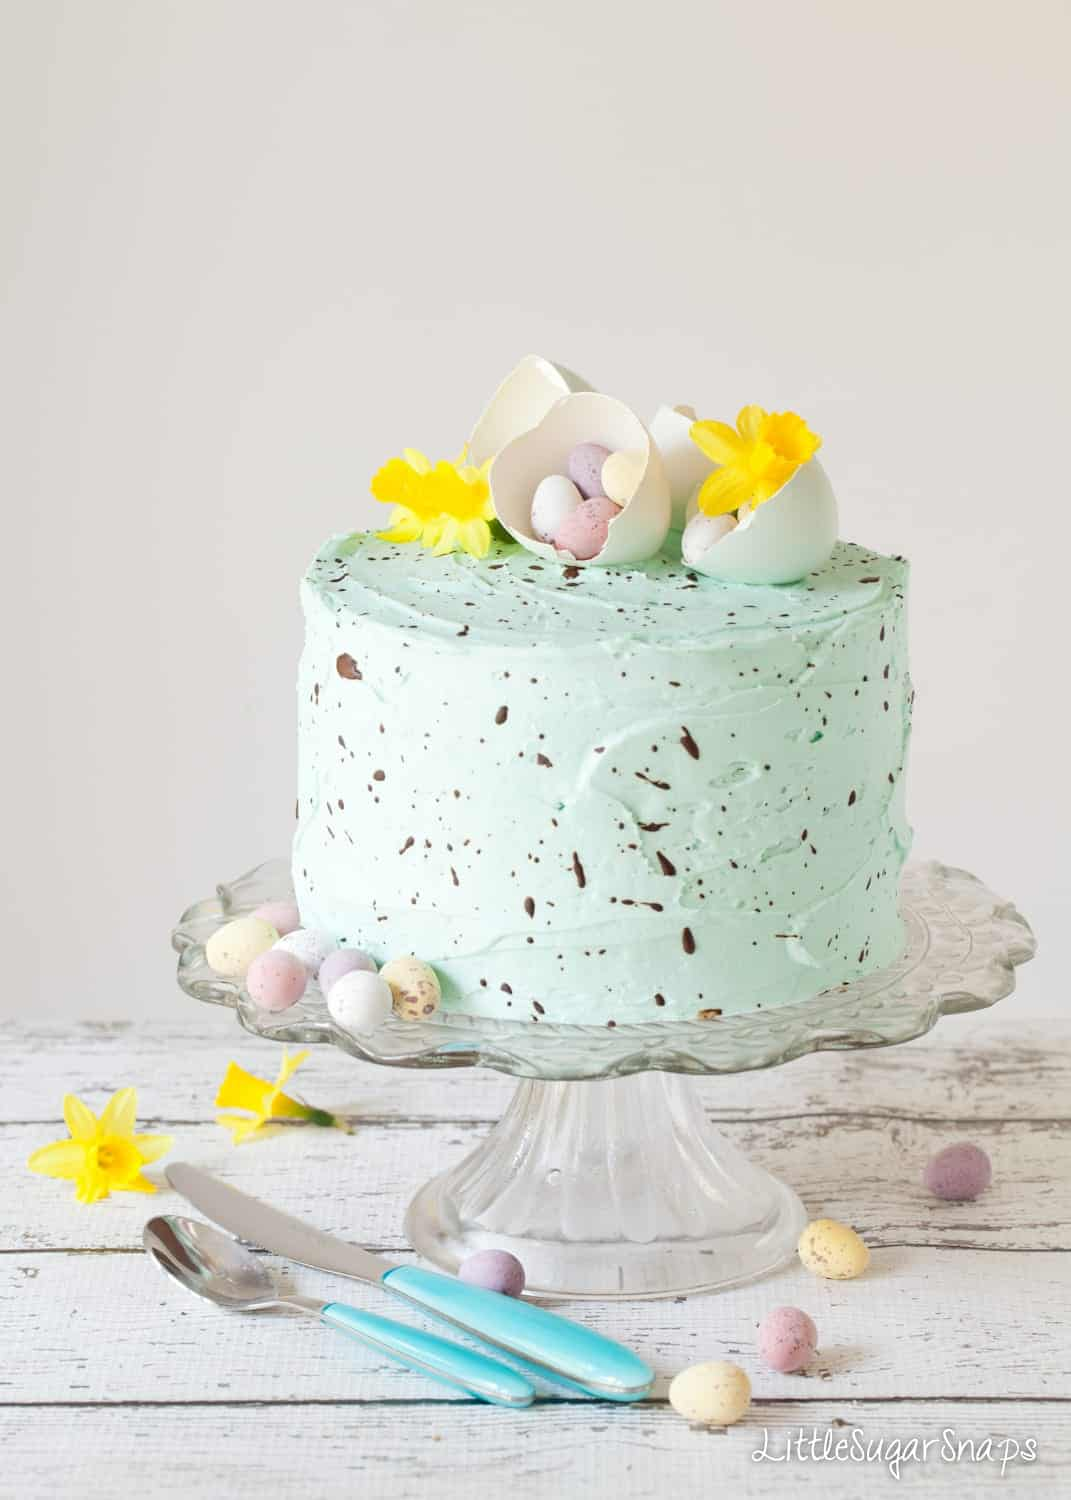 Speckled Cake - White Chocolate Peppermint Cake